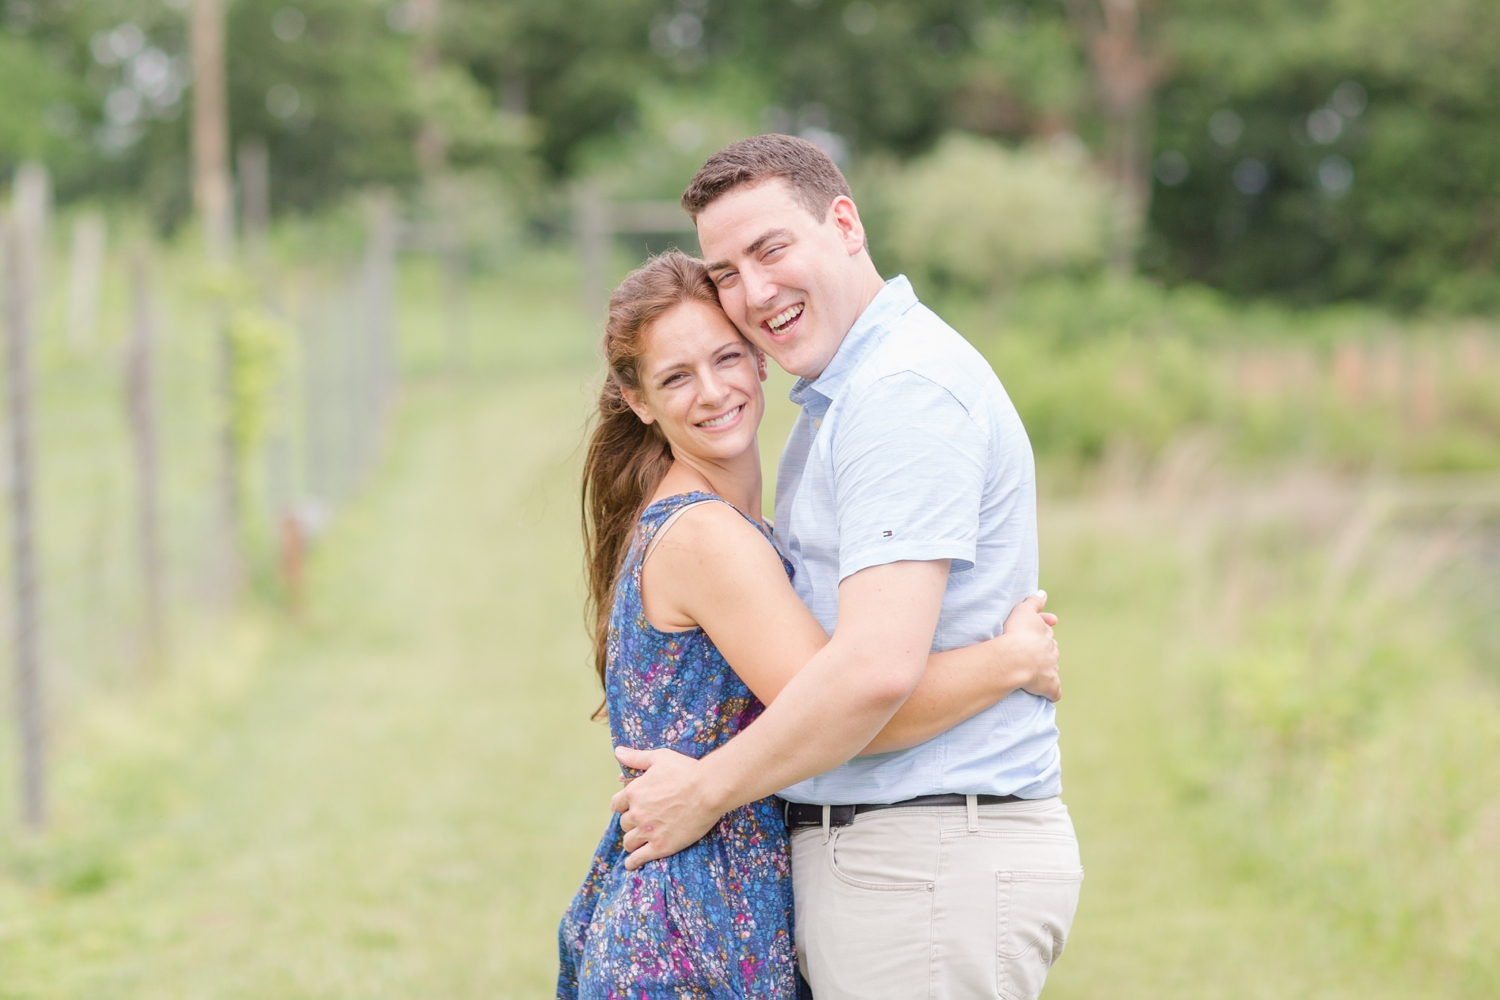 Colin & Kelsey Engagement-212_anna grace photography sunset hills vineyard engagement photography virginia wedding and engagement photographer photo.jpg